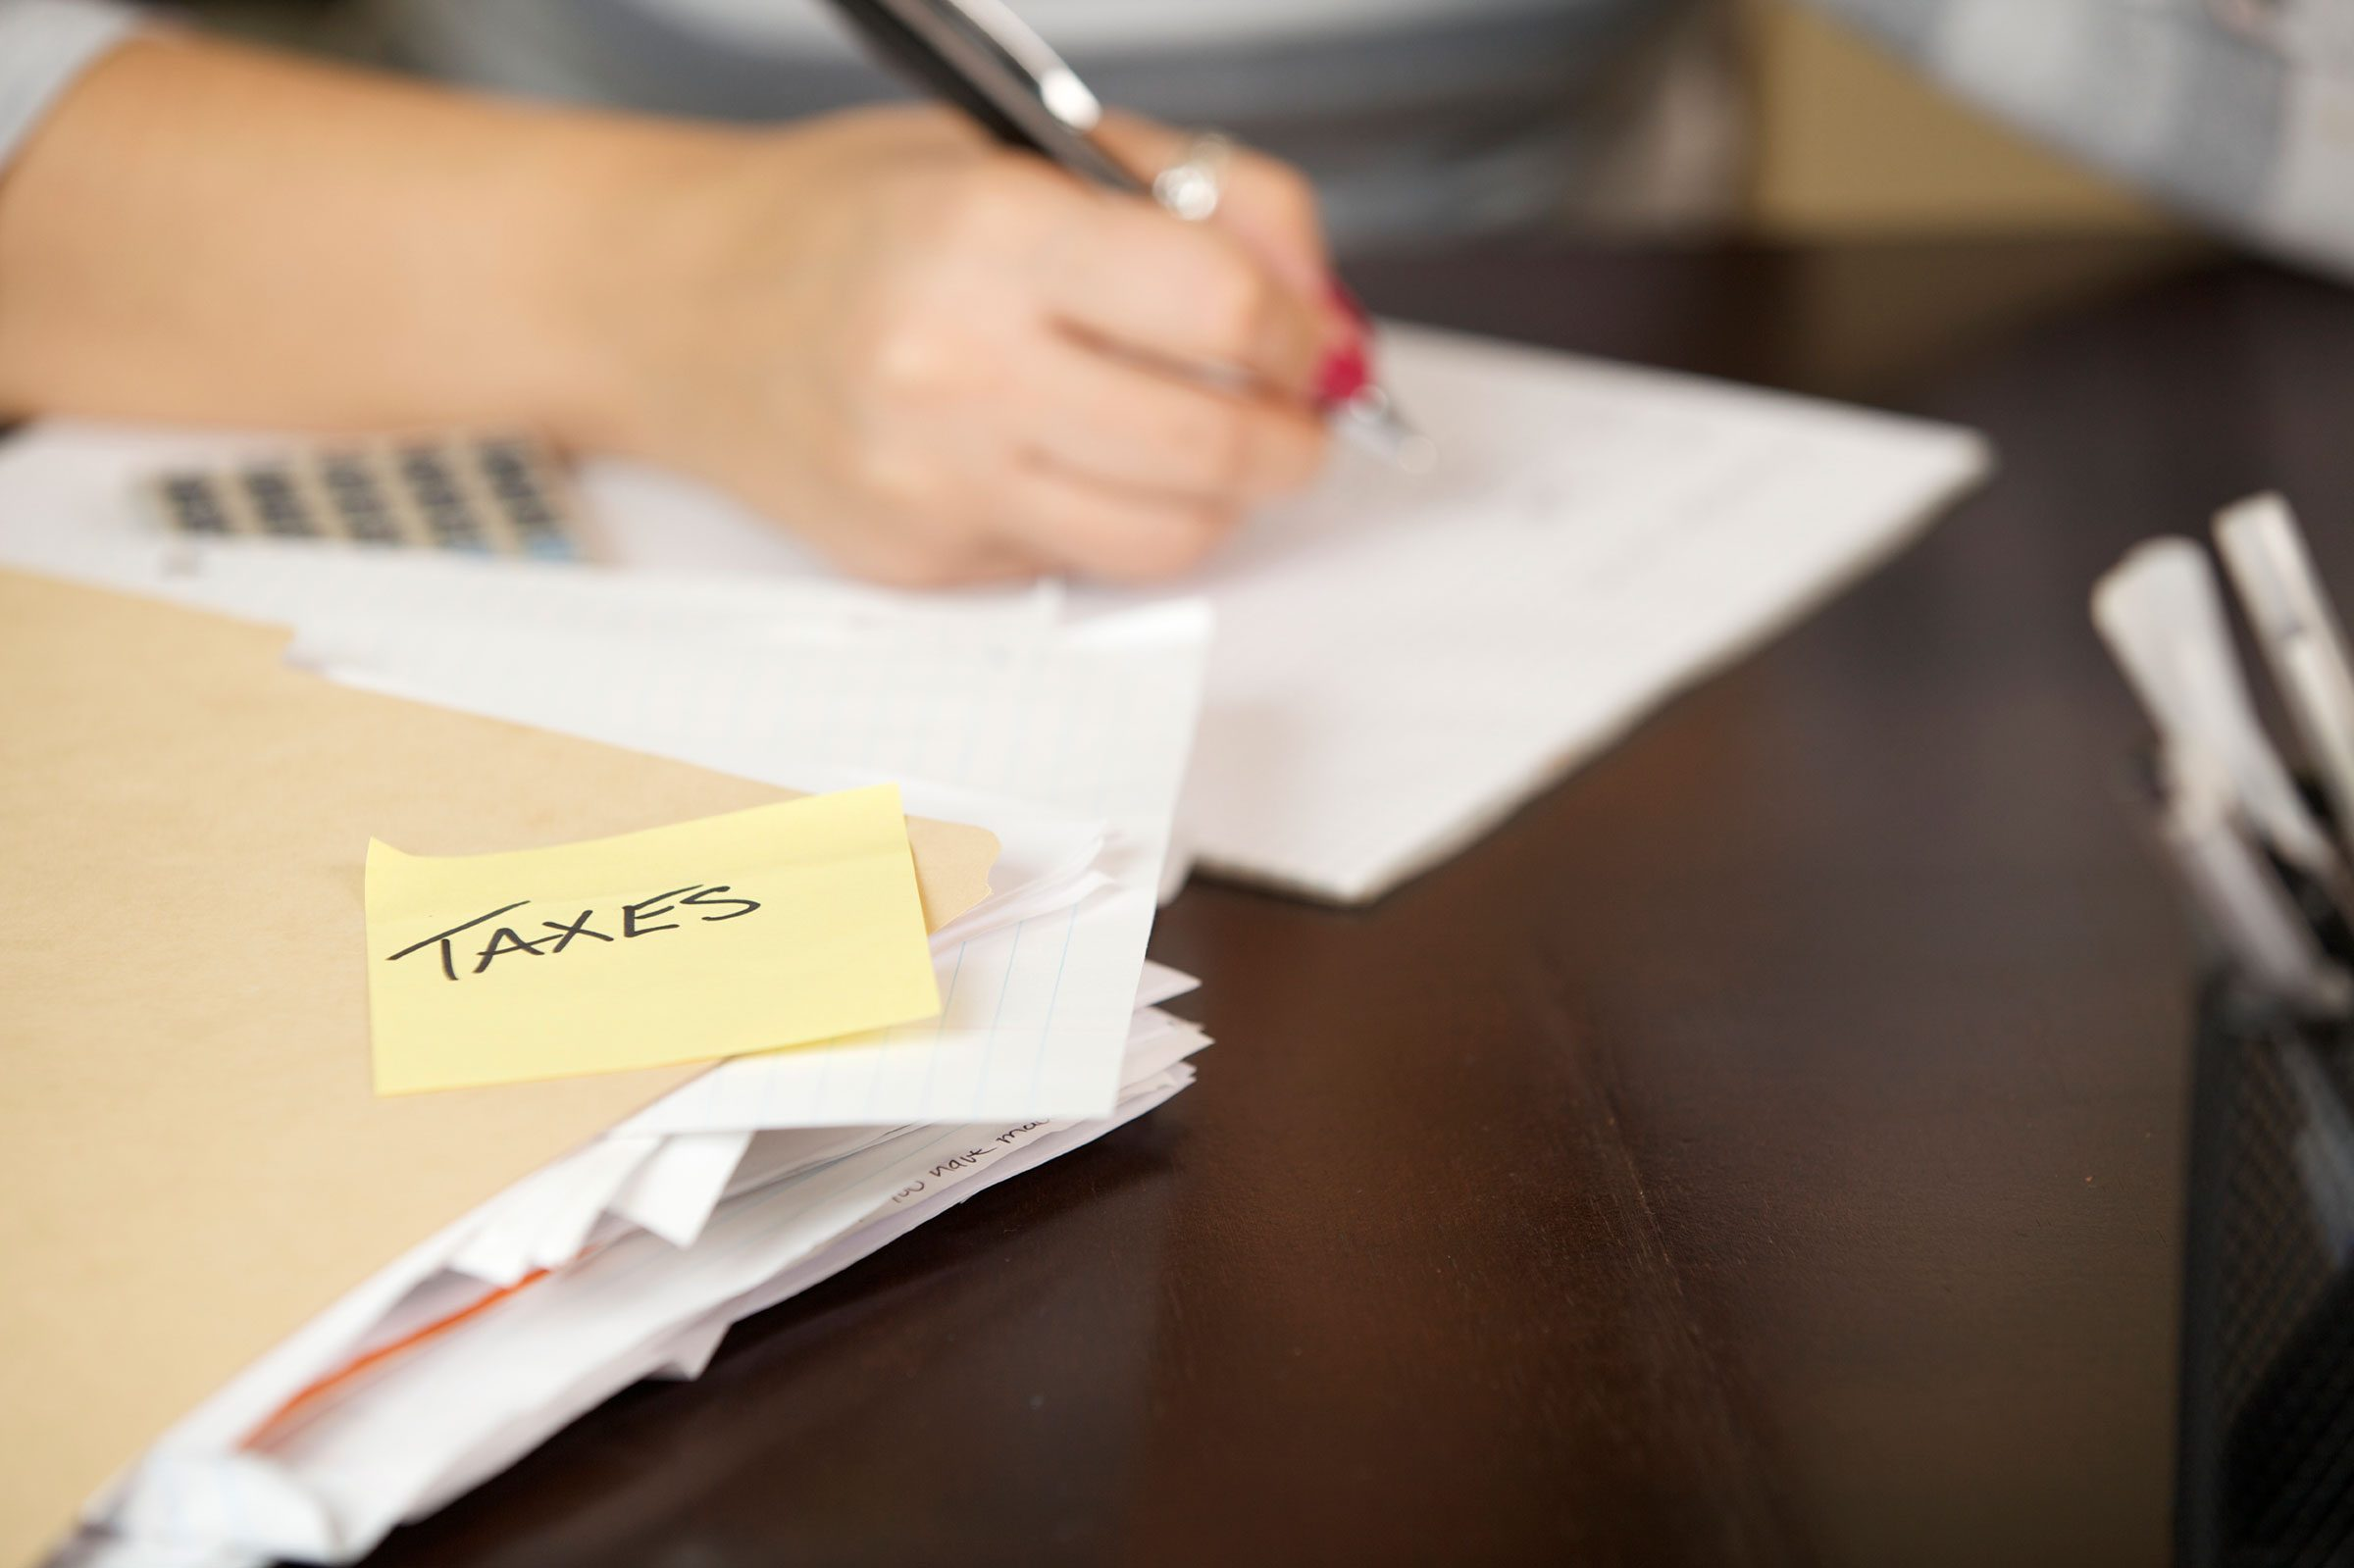 Things Your Tax Accountant Won't Tell You for Free | Reader's Digest